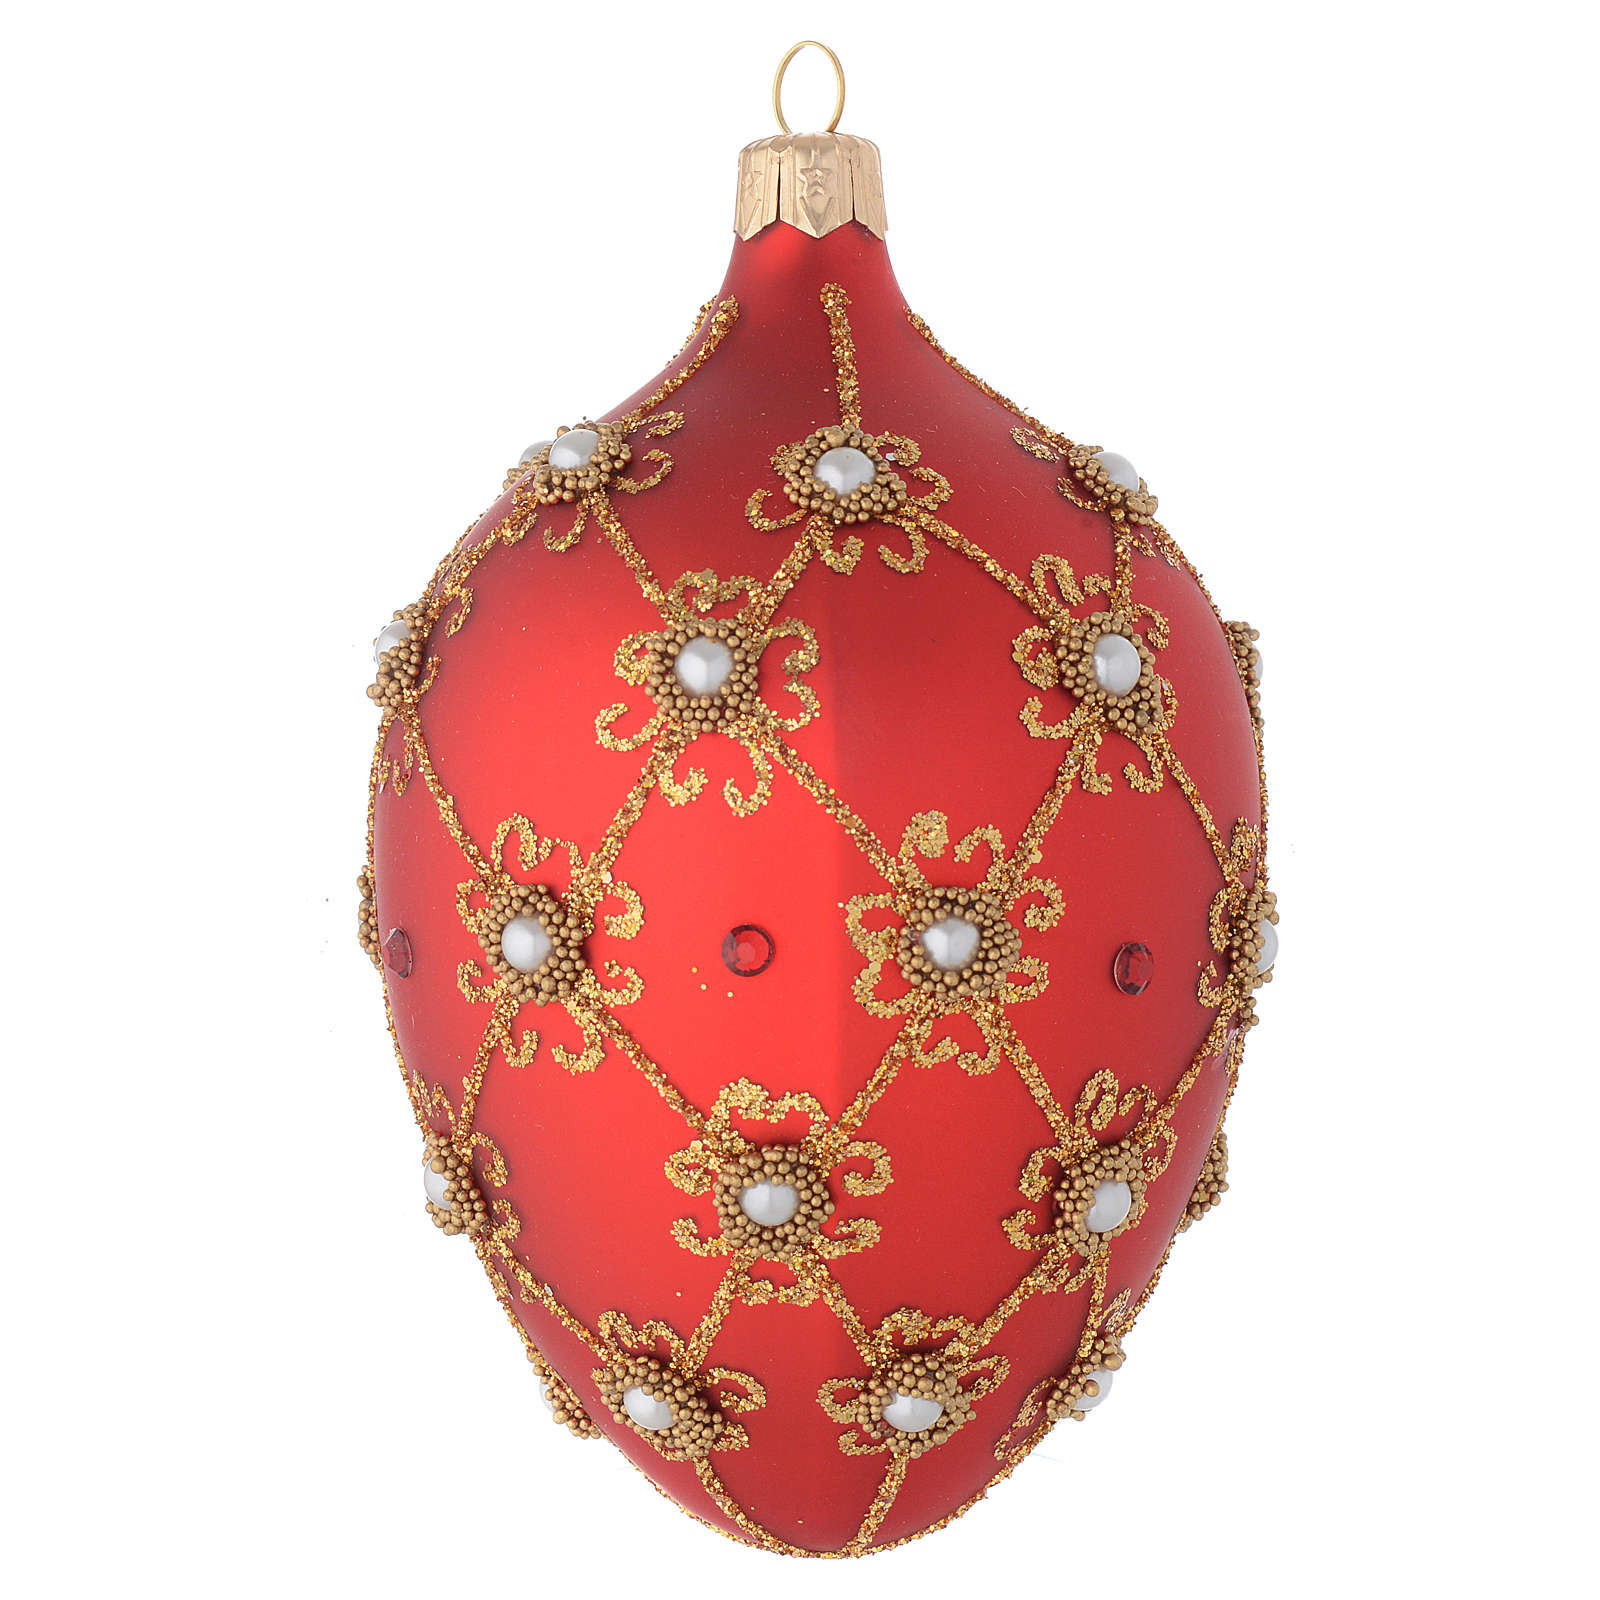 Oval bauble in red blown glass with pearls and gold decorations 130mm 4